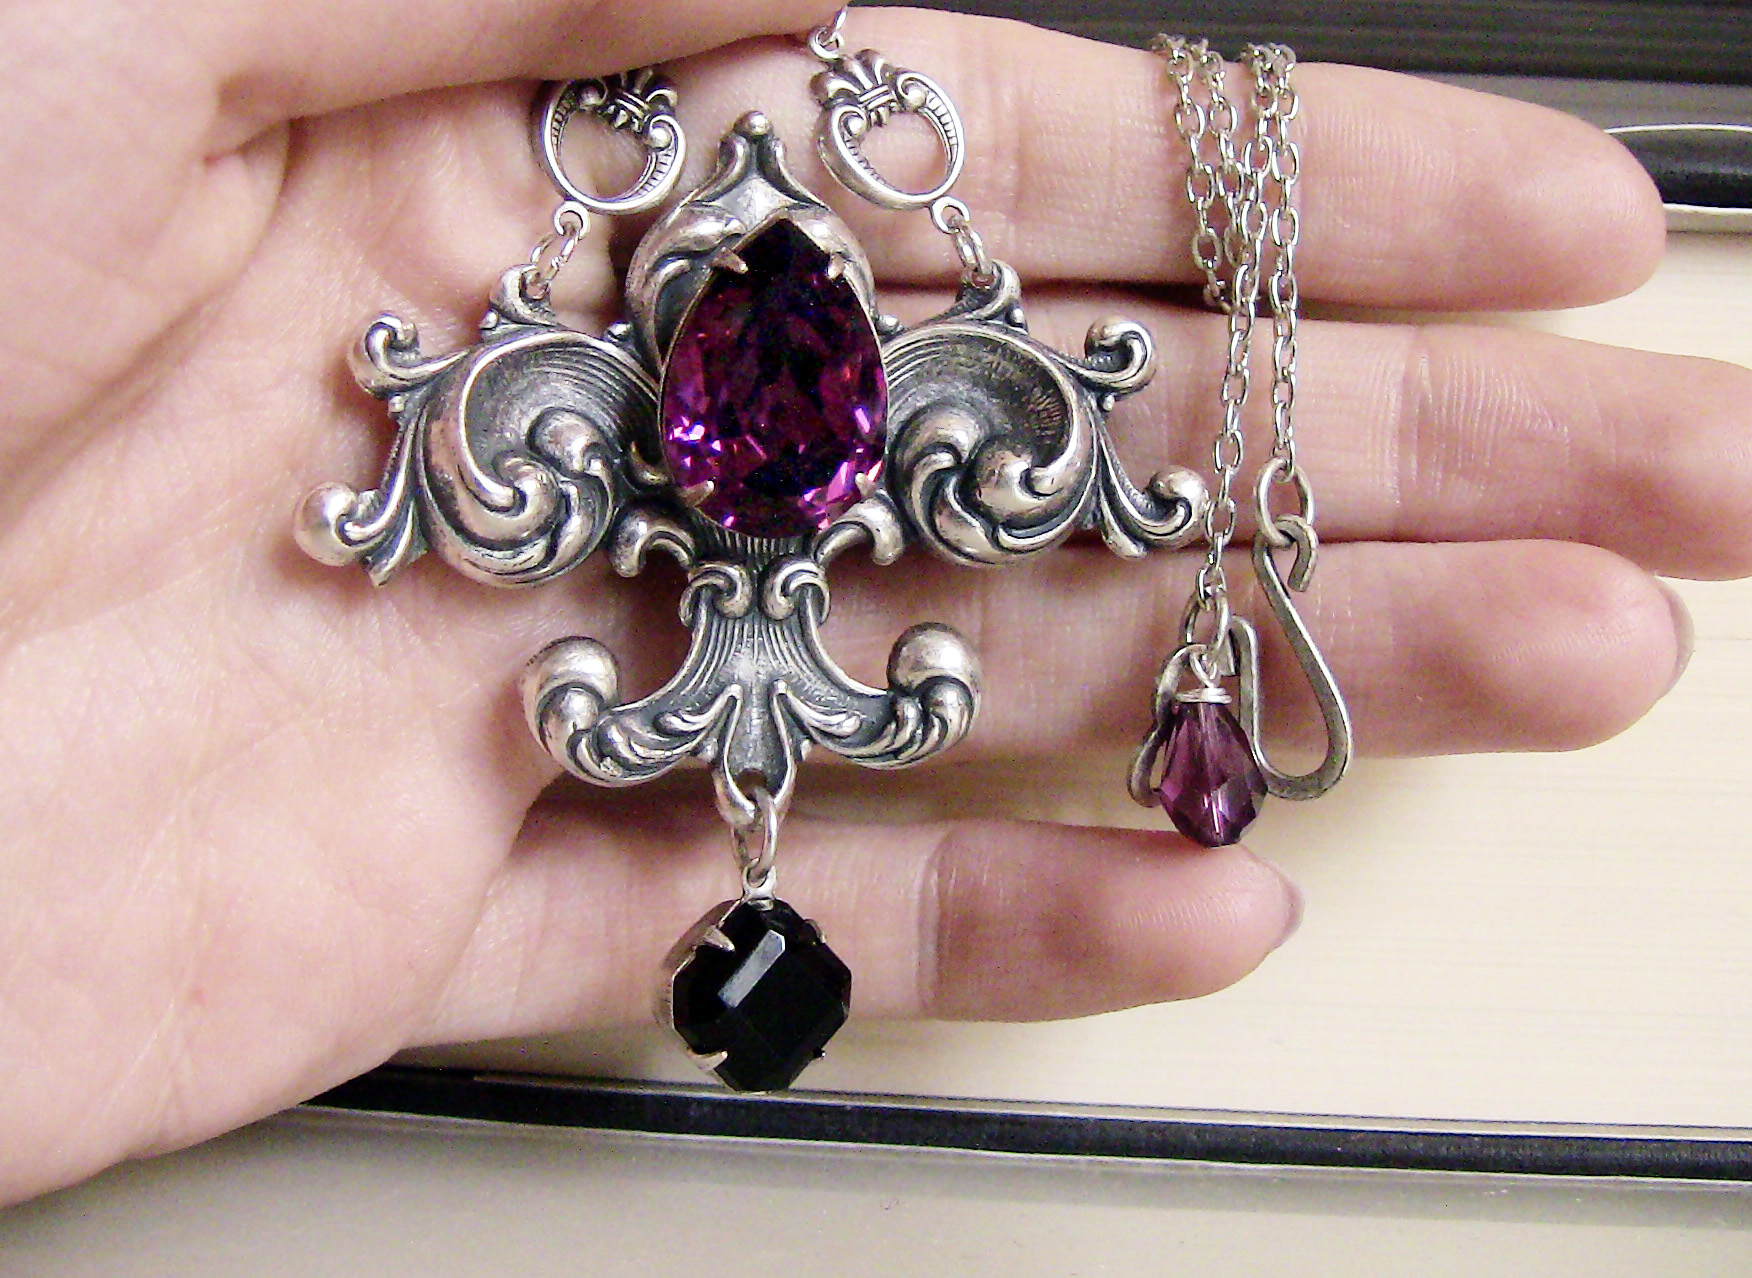 fleur_de_lys_necklace_black_purple_swarovski_crystals_necklaces_4.jpg